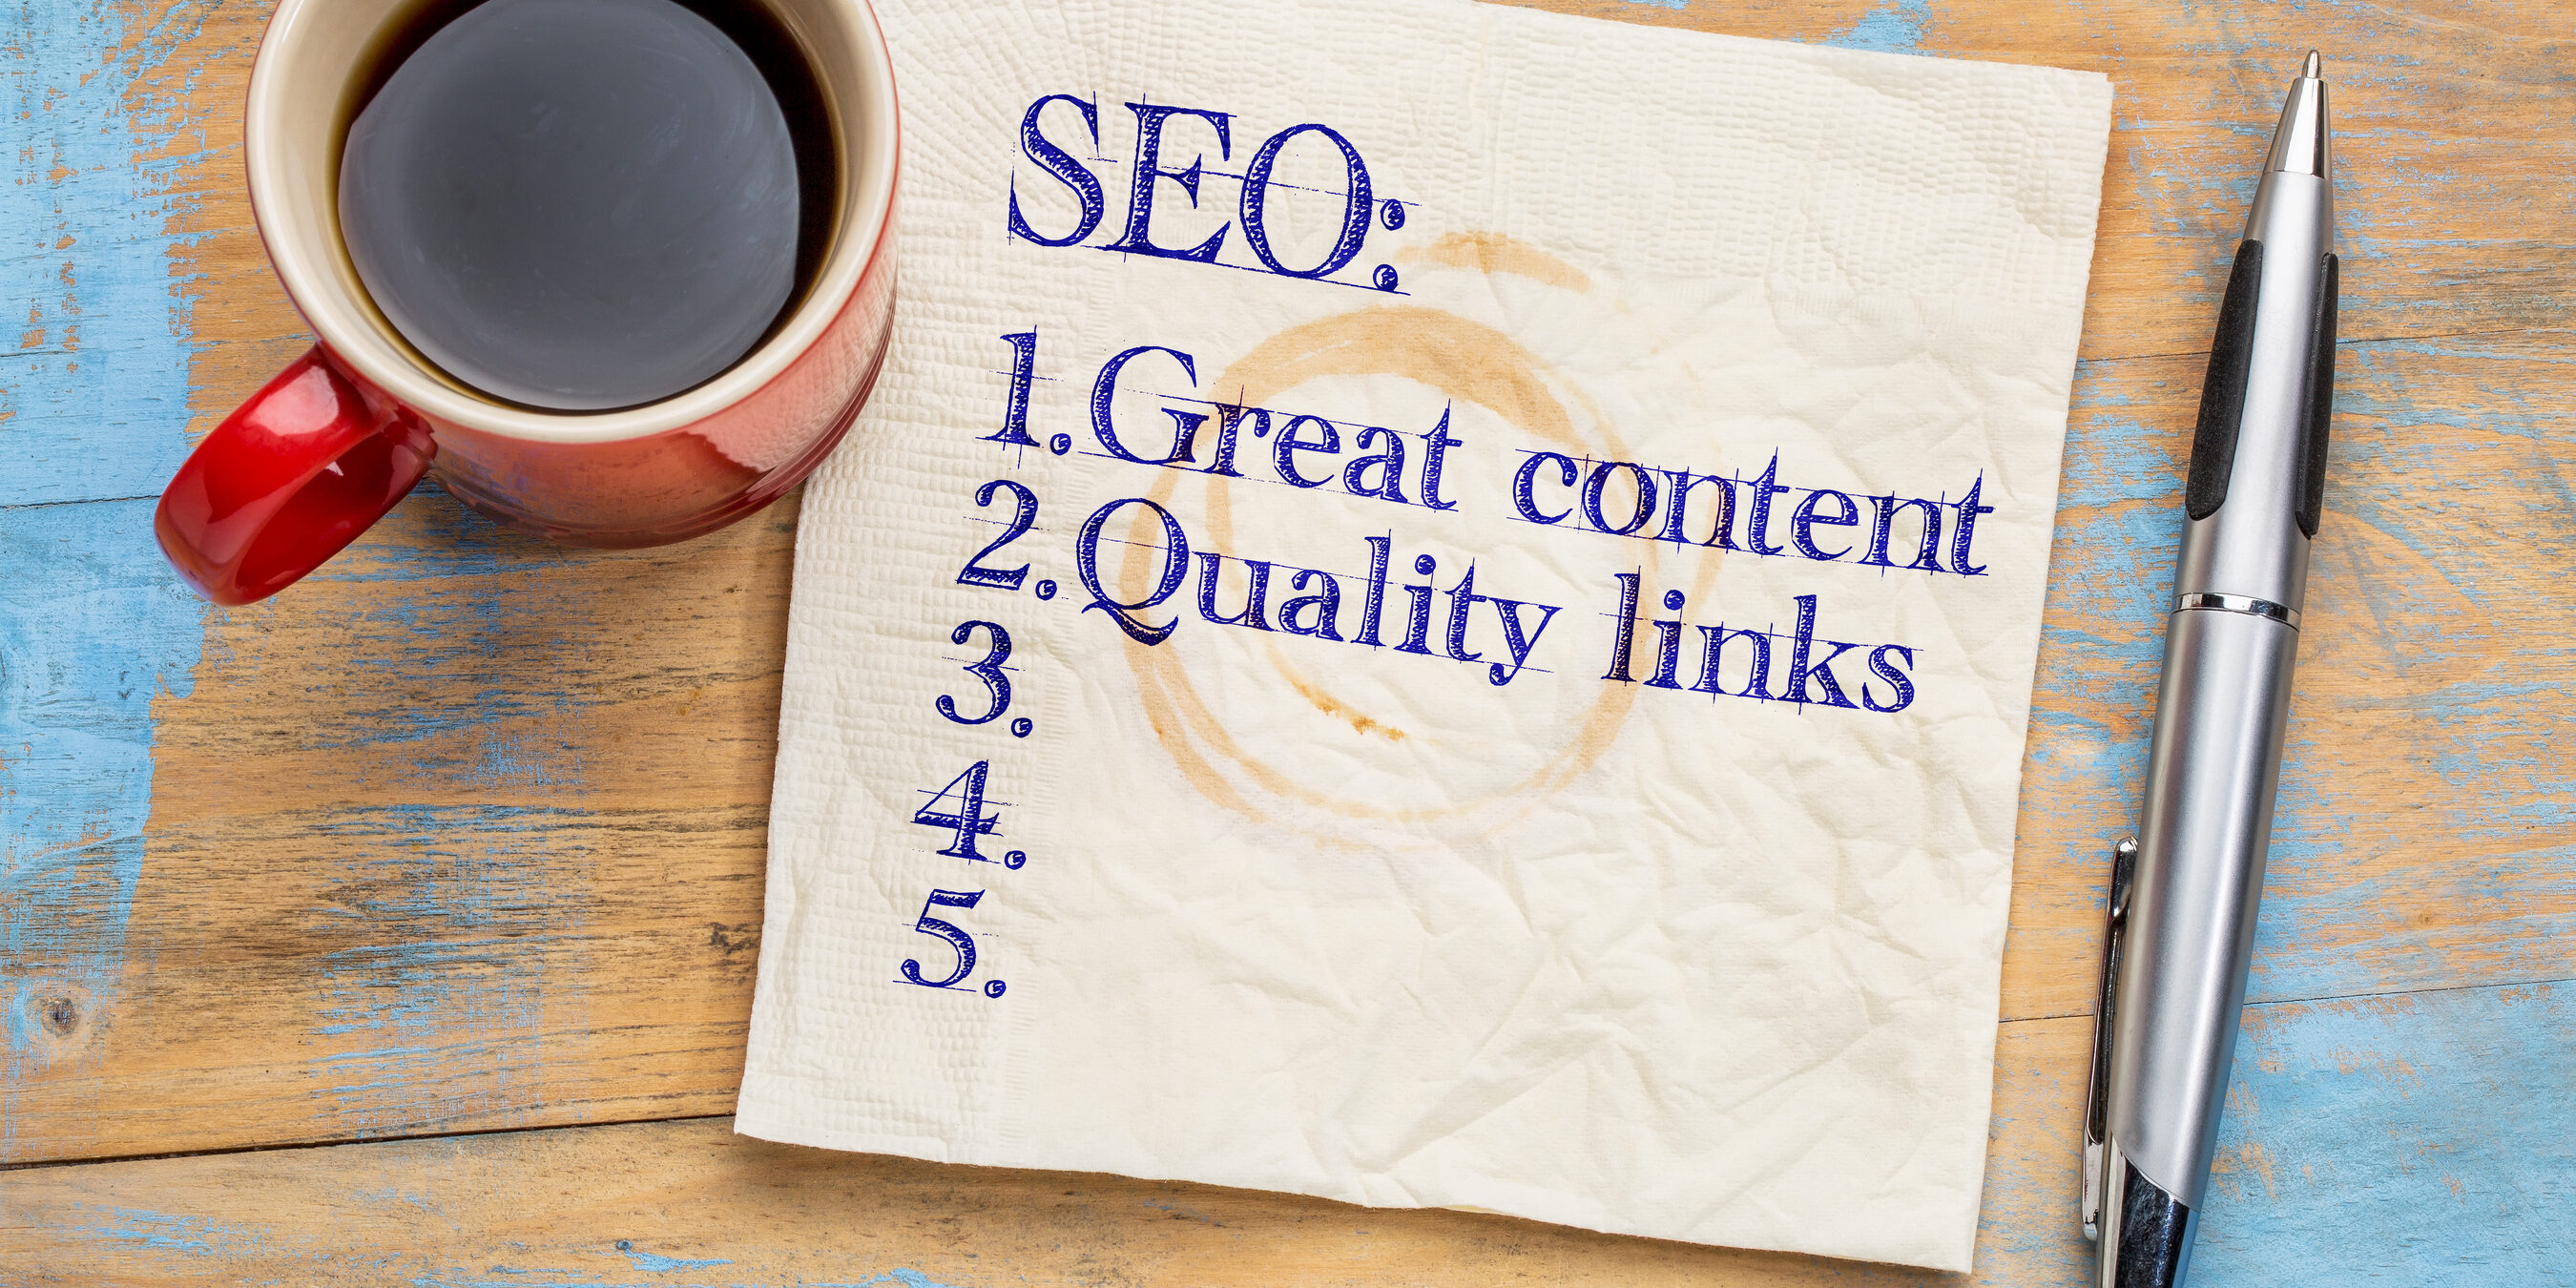 SEO (search engine optimization) tips (great content and quality links) written on napkin with a cup of coffee | Vanguard Communications | Denver, CO